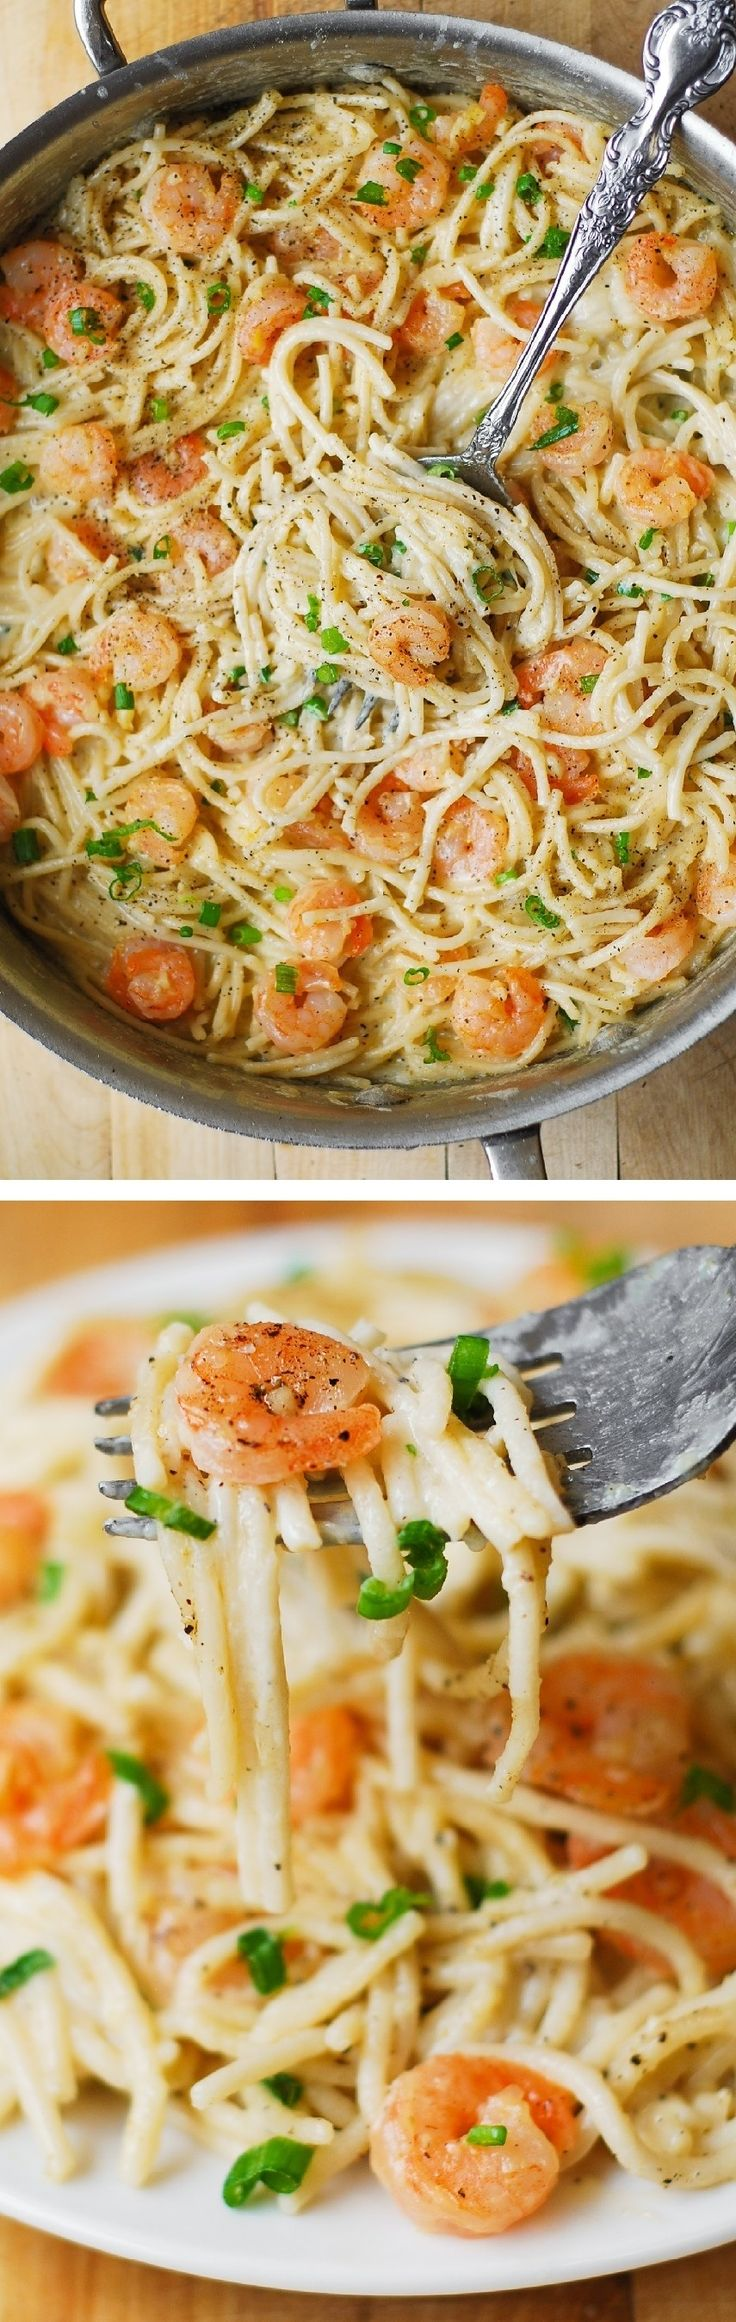 Garlic Shrimp Alfredo Pasta – a simple, 35-minute dinner.  Shrimp is cooked in butter and lots of garlic, then combined with a homemade, very creamy 4-cheese Italian pasta sauce!